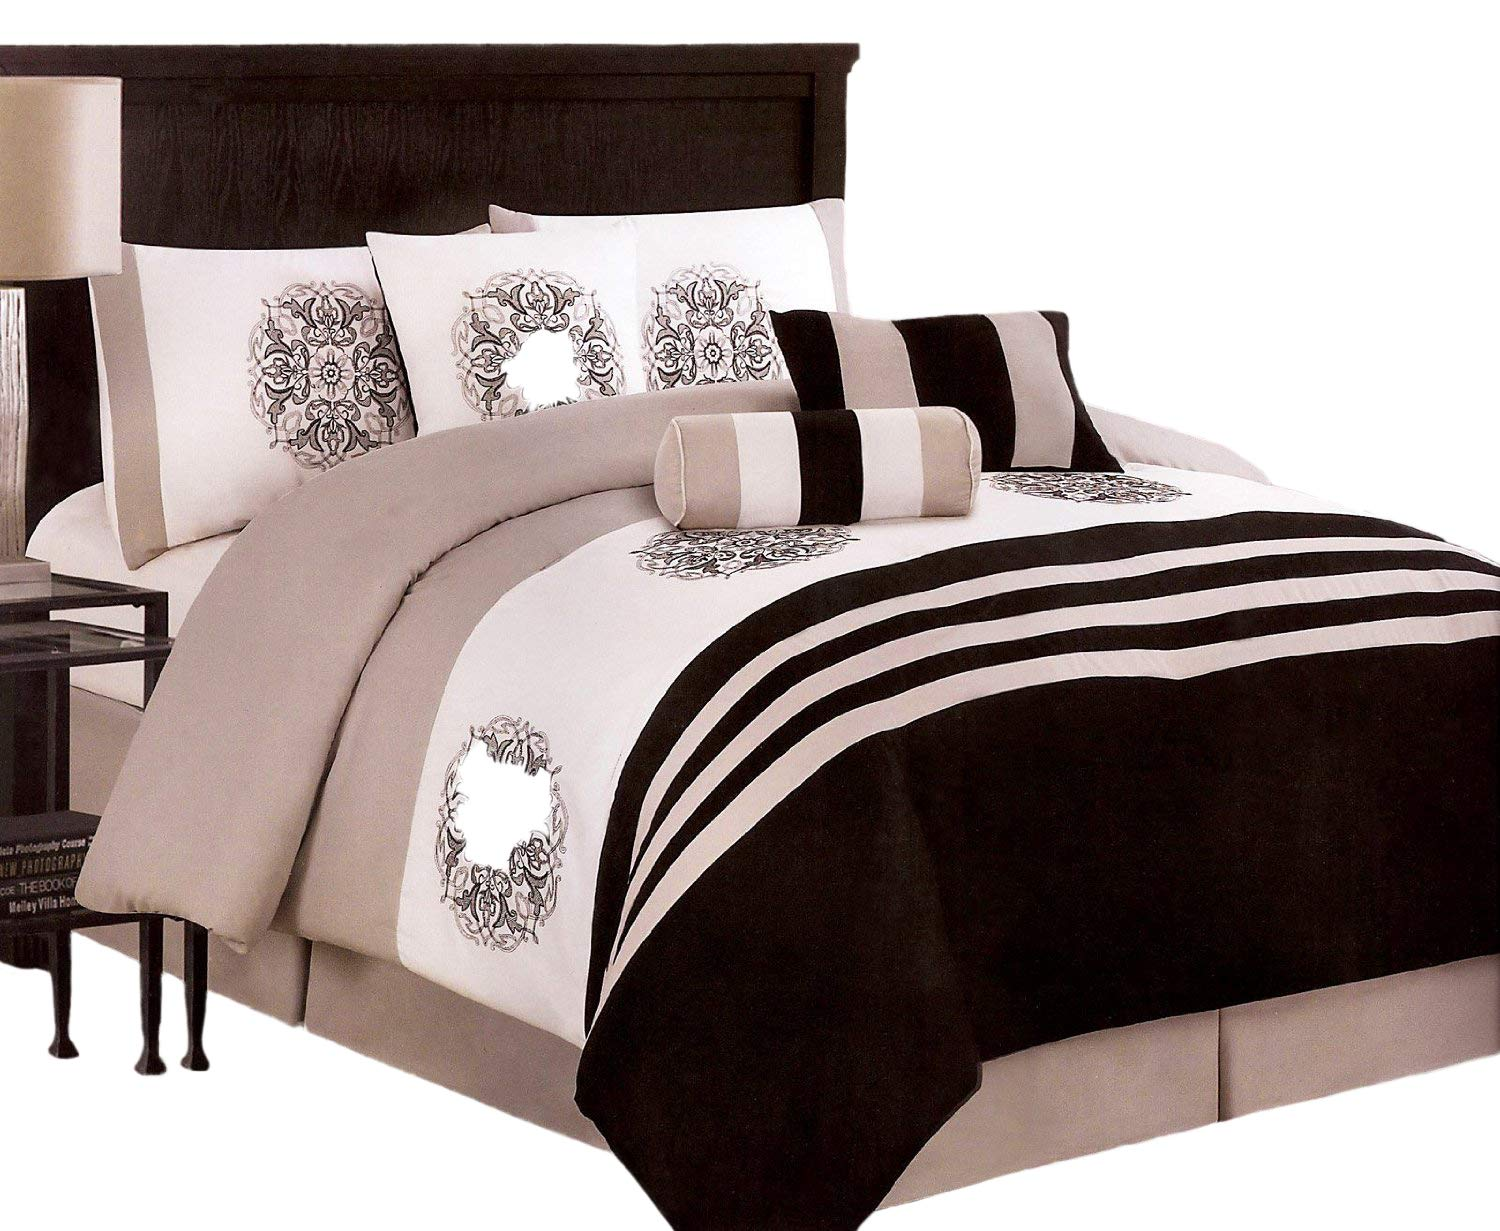 7-pieces Embroided Medallion Comforter Set King, Black/Taupe/White JD Home